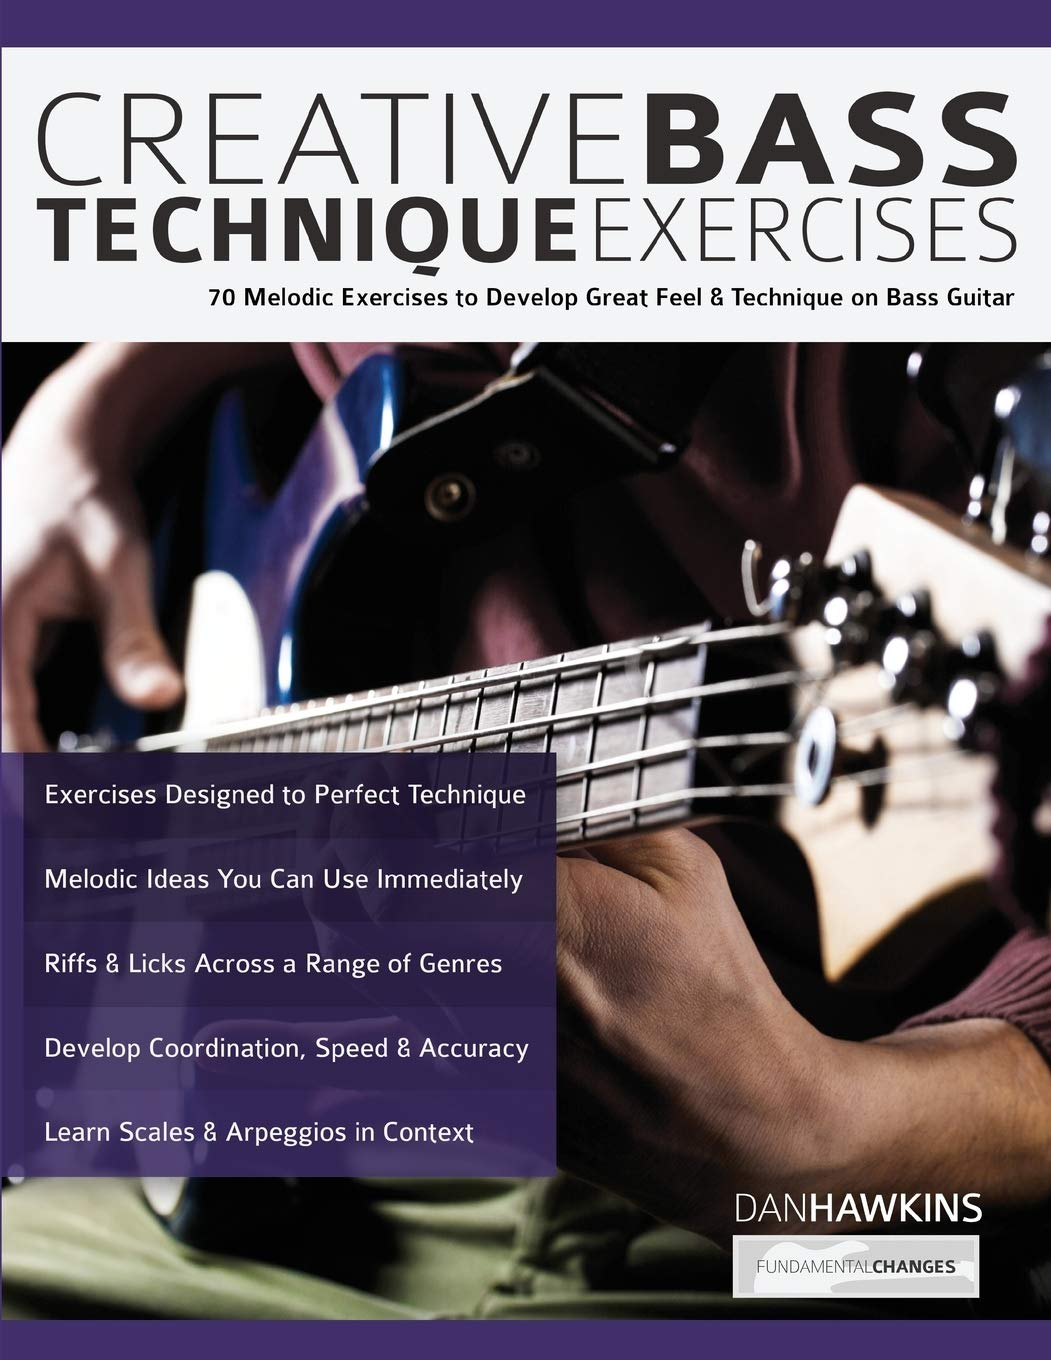 Creative Bass Technique Exercises- 70 Melodic Exercises to Develop Great Feel & Technique